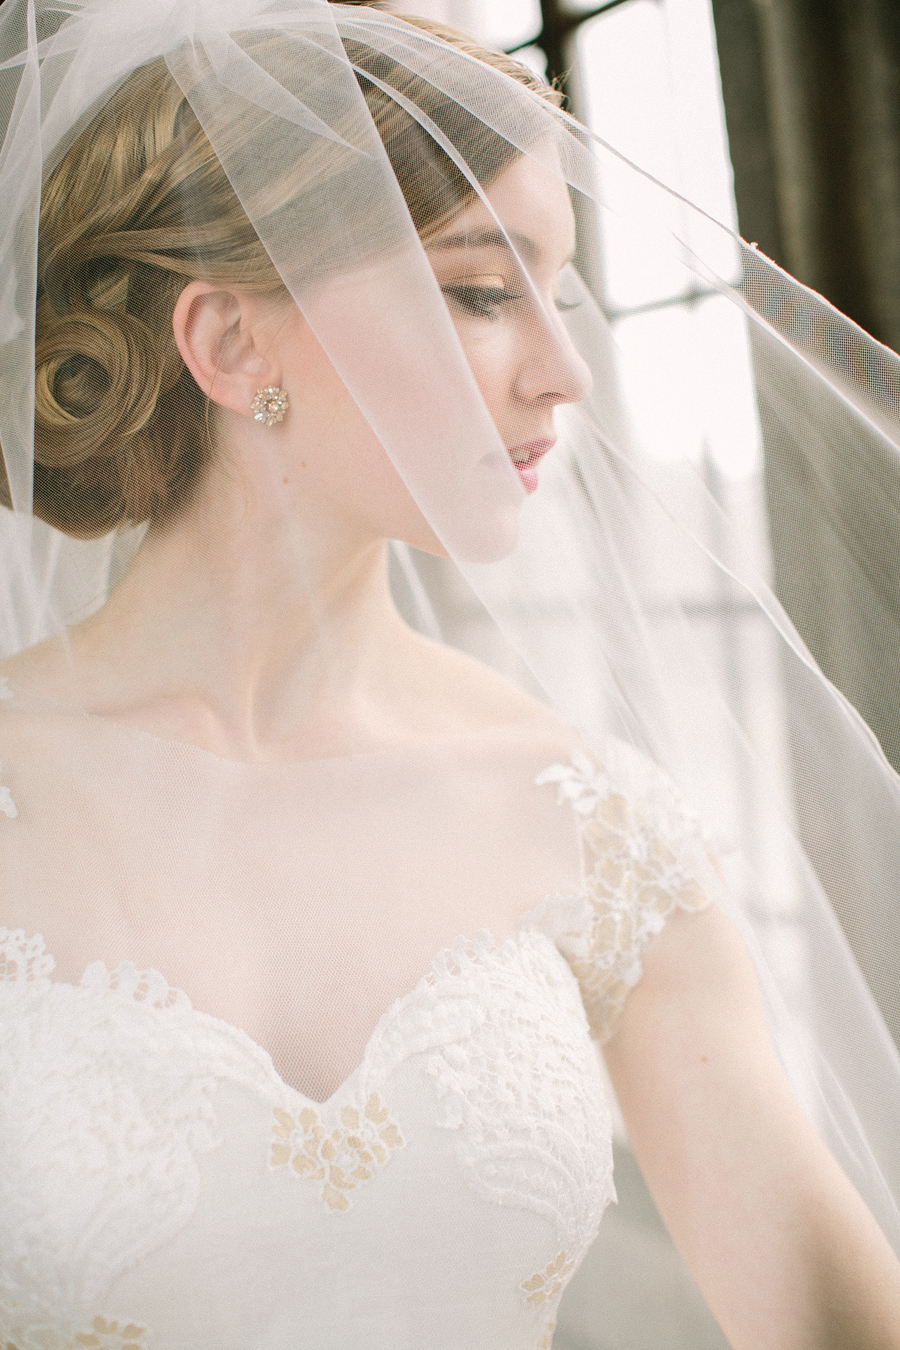 Sheer Cathedral Length Veil Elizabeth Anne Designs The